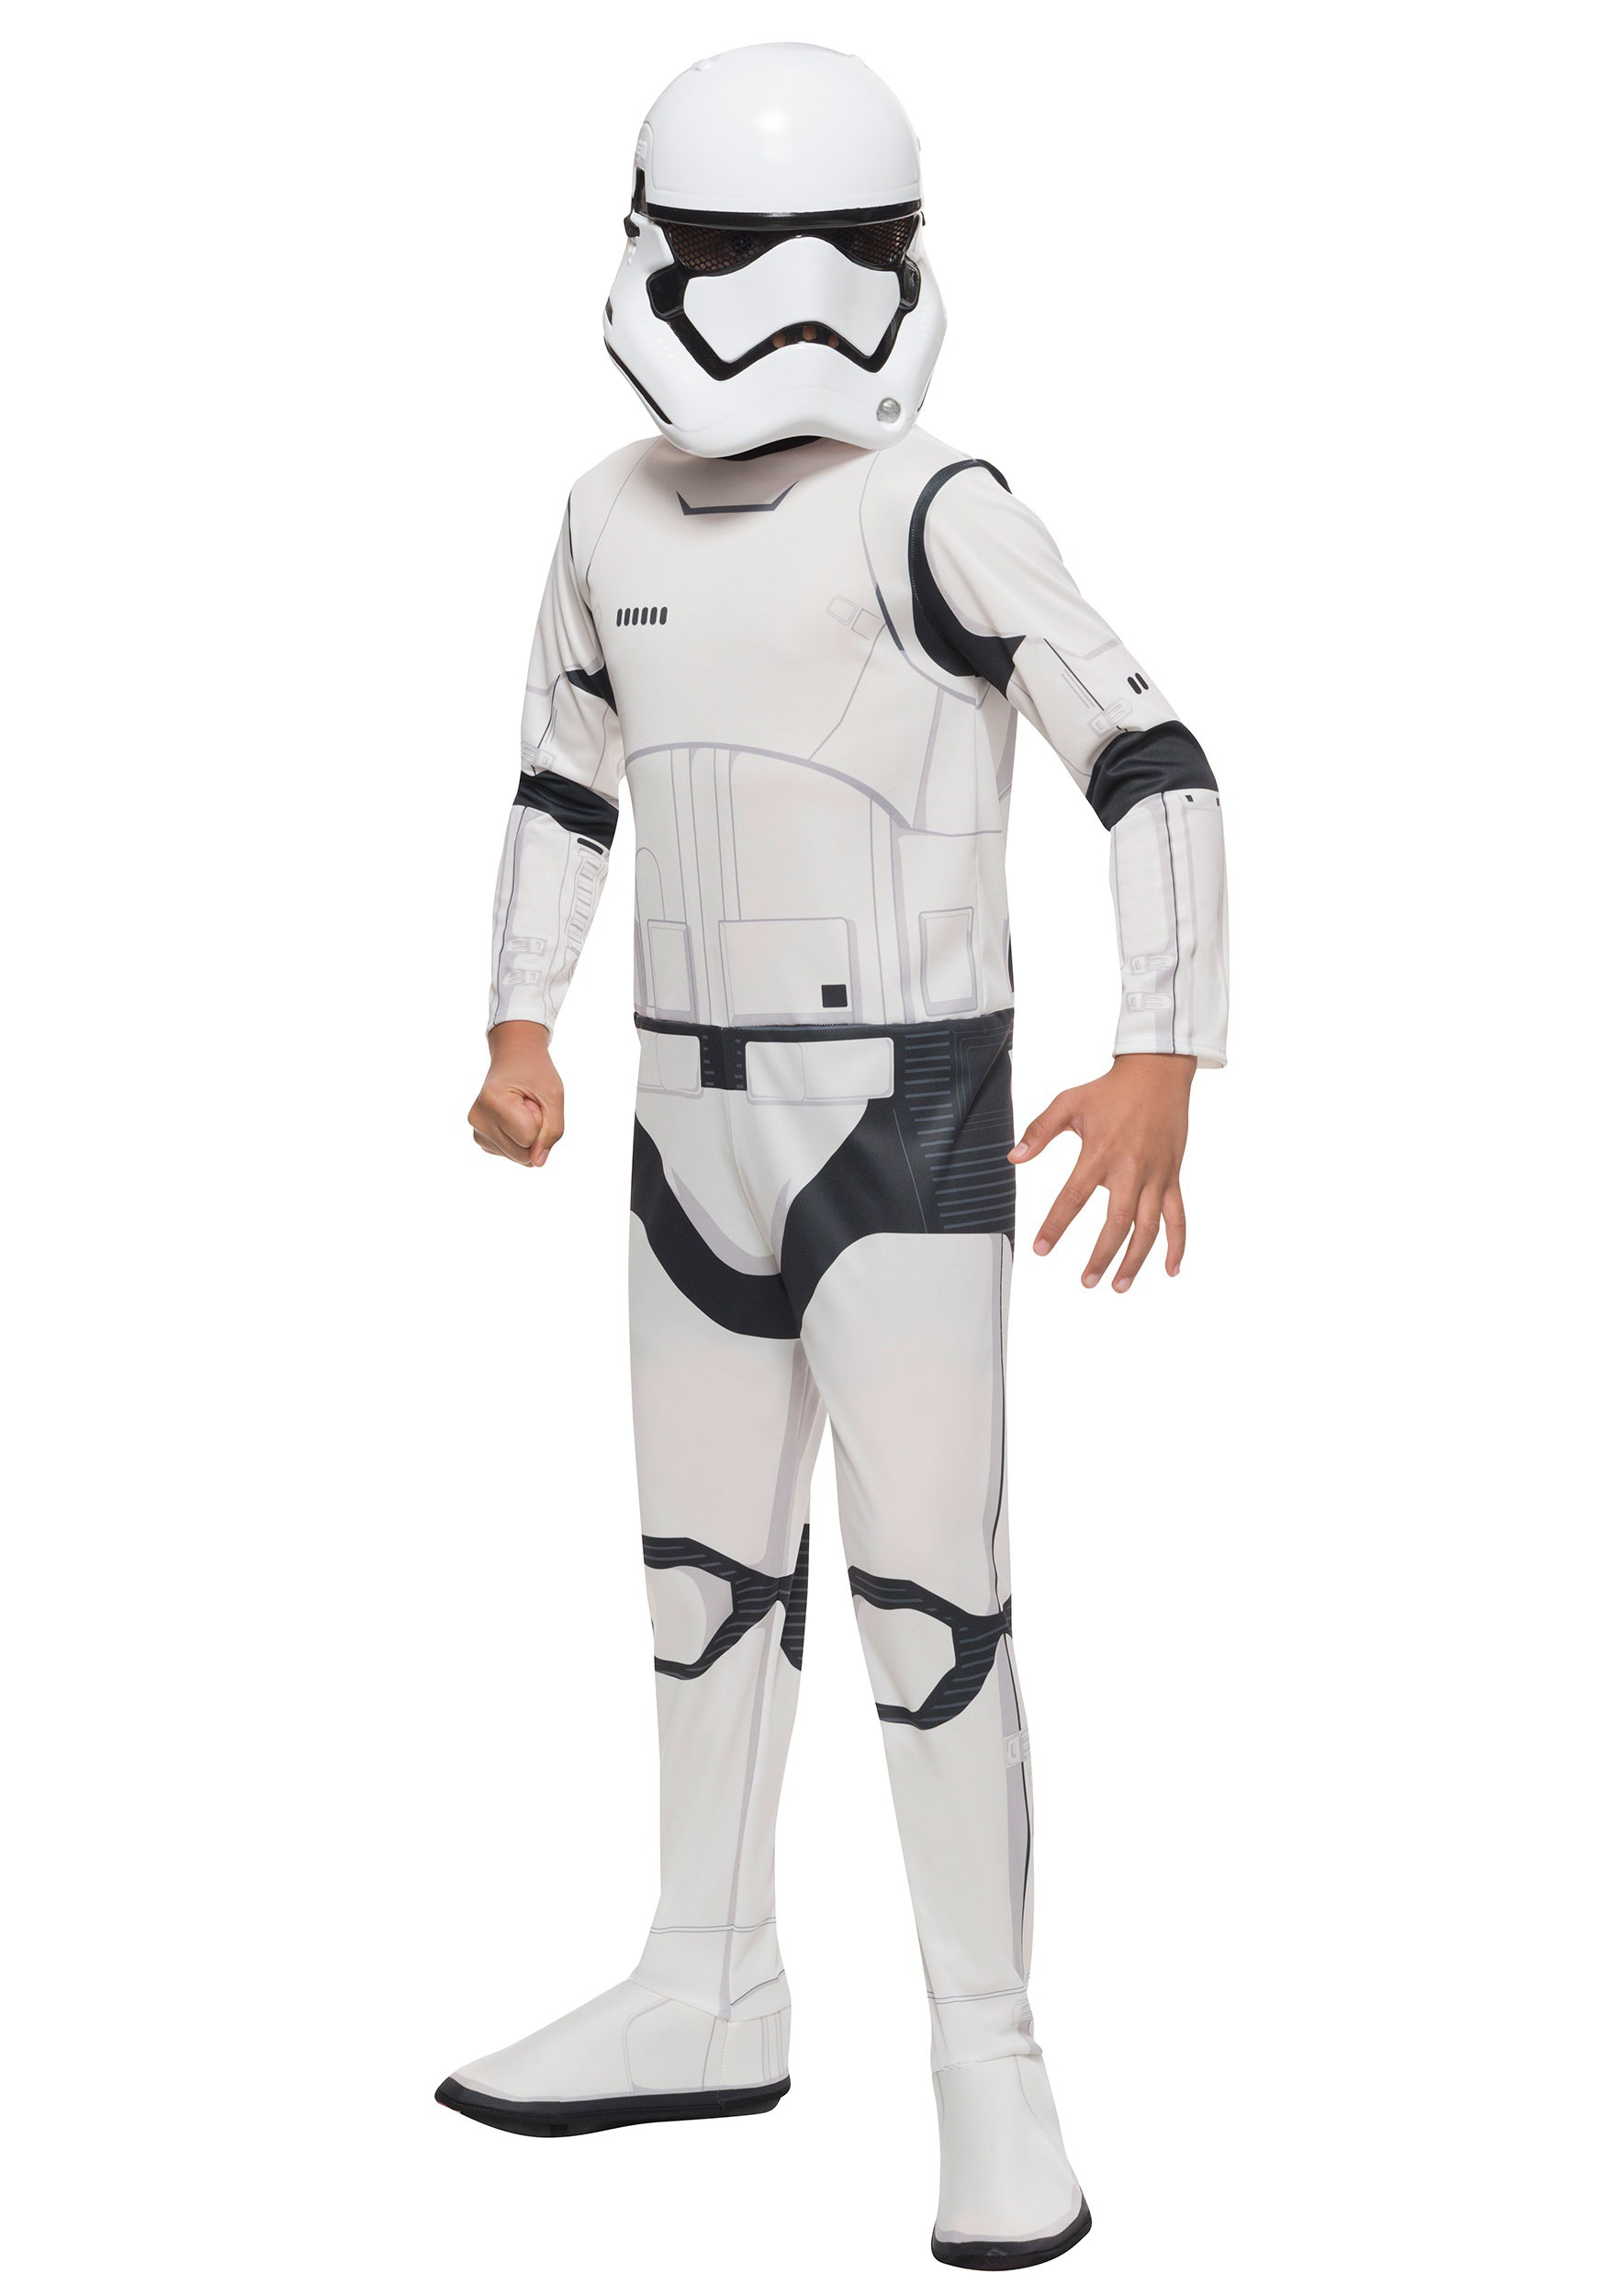 Boy's Villain Storm Trooper Costume RU620088